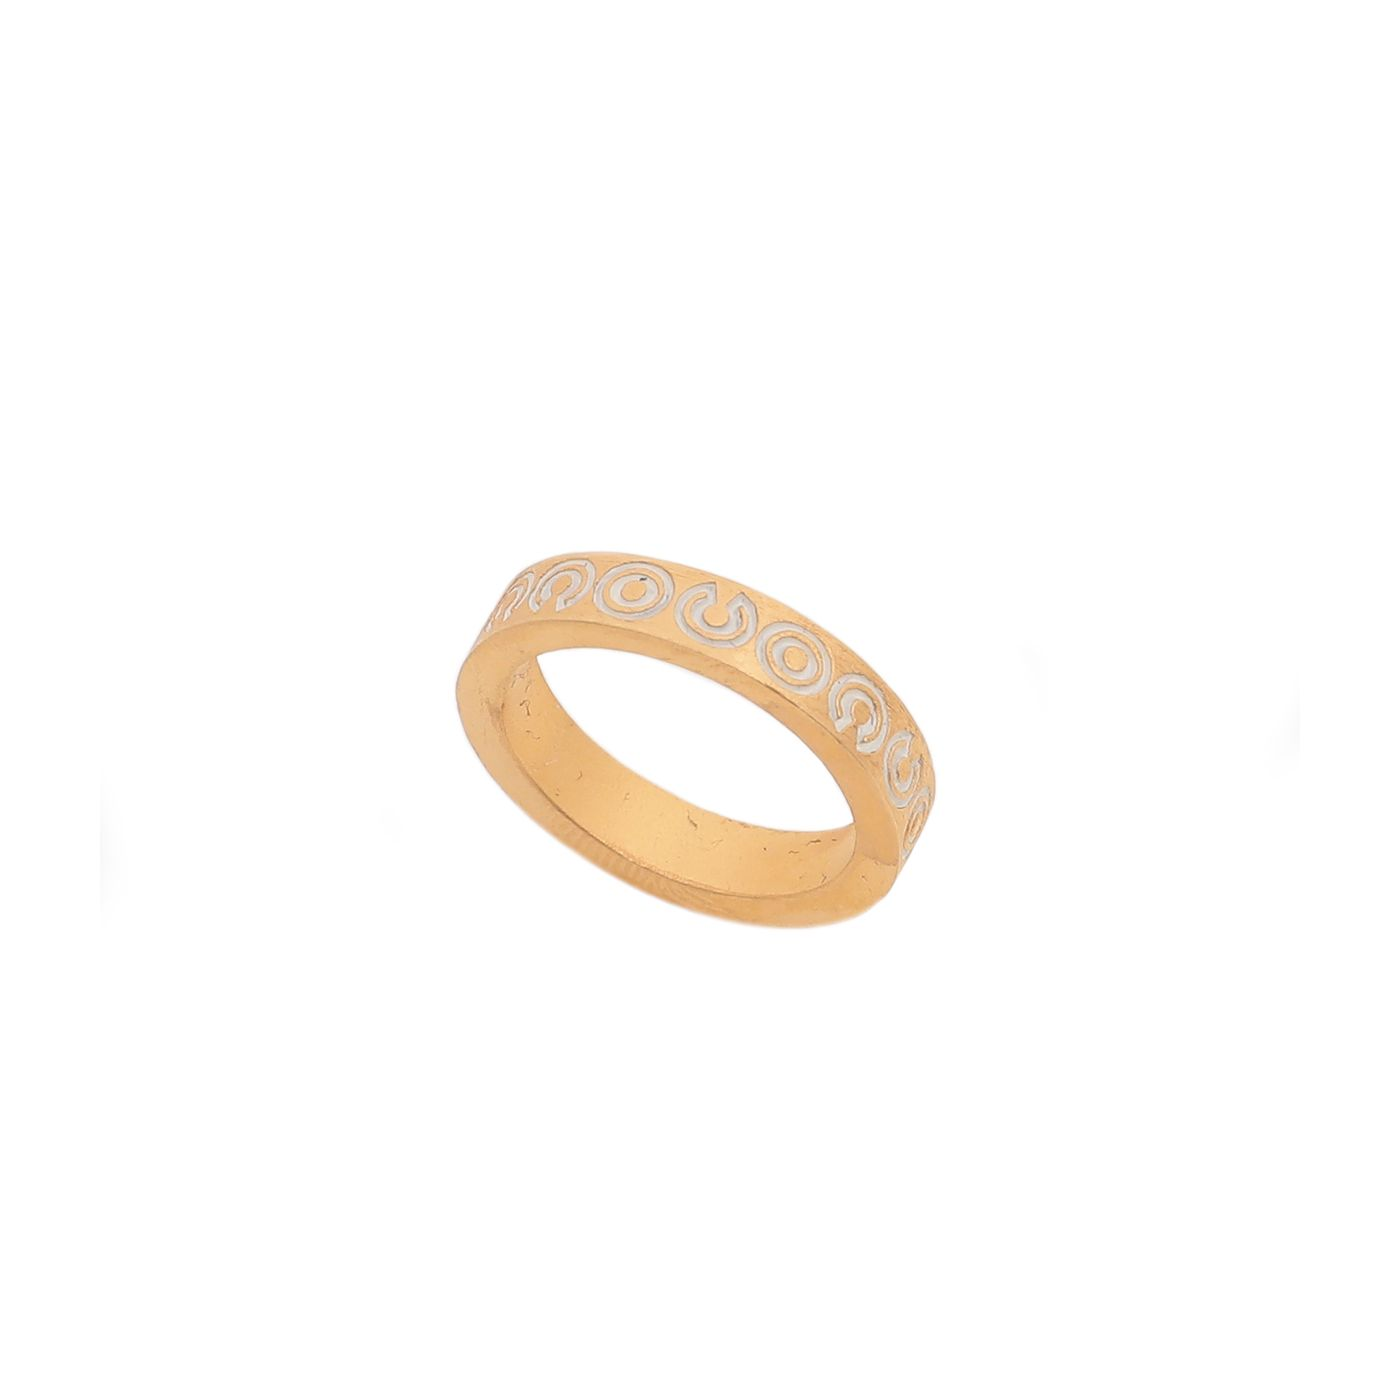 Chanel Yellow Gold Coco Ring